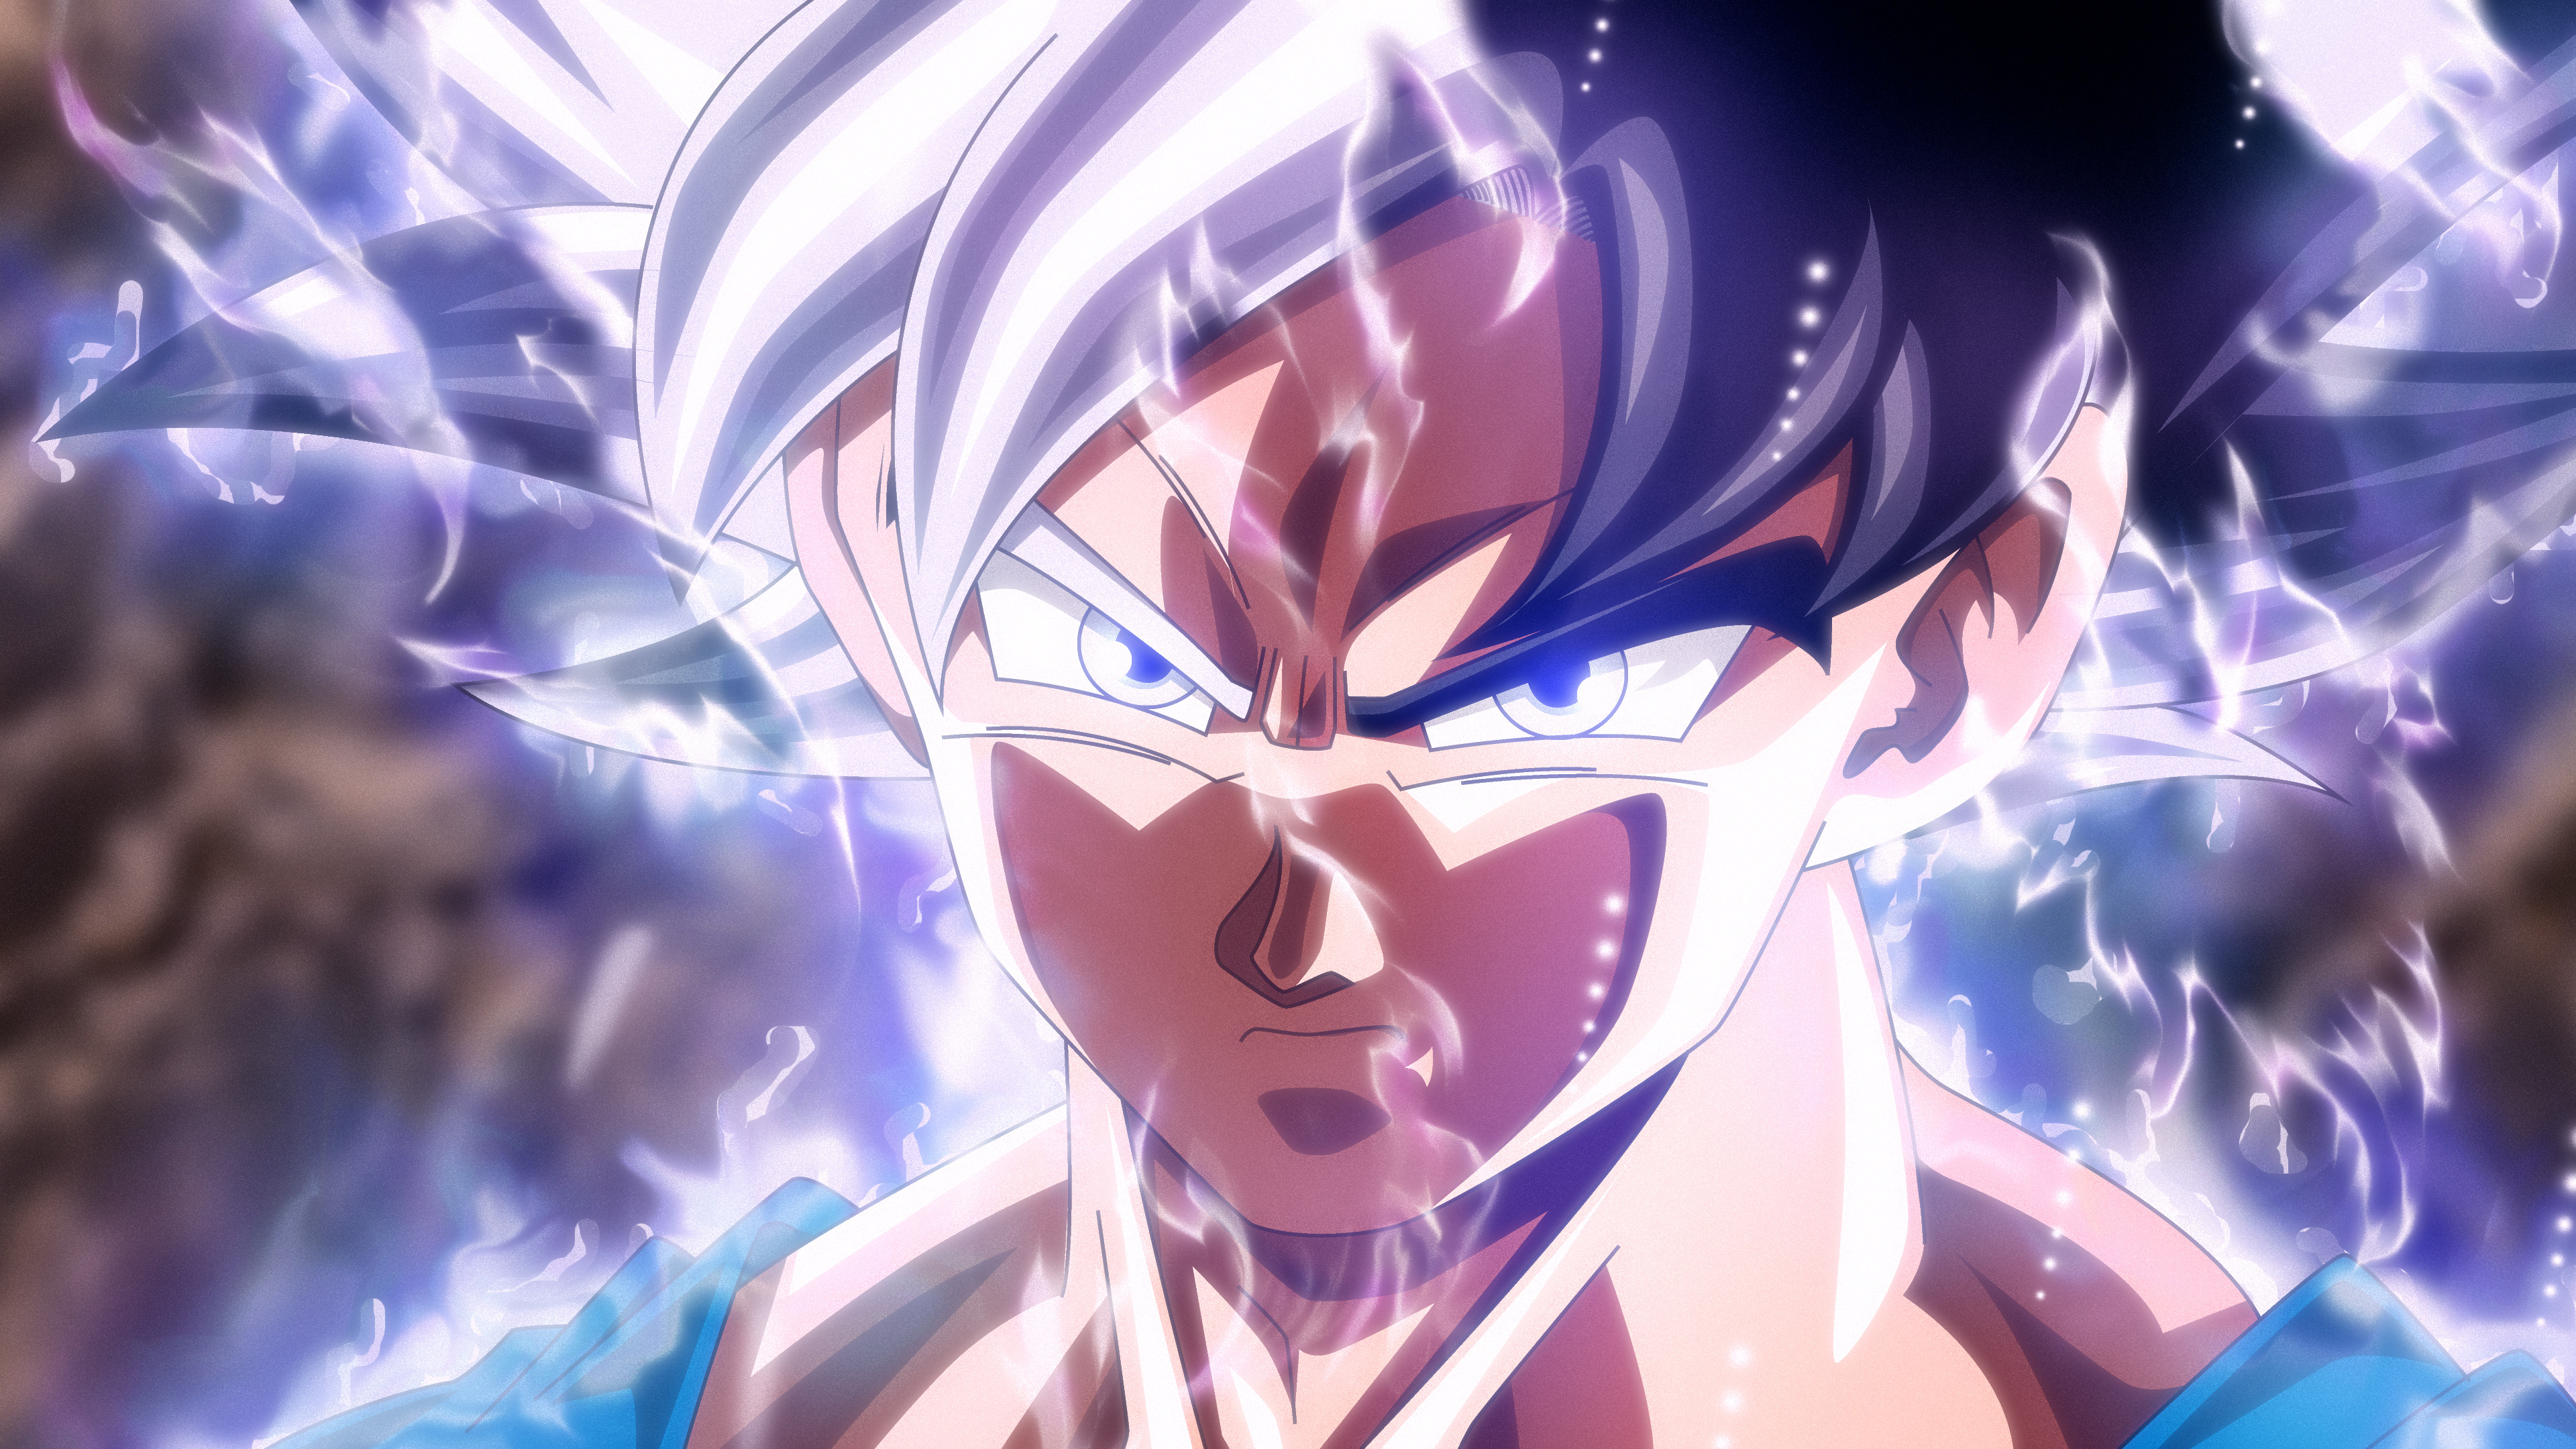 Goku Ultra Instinct Mastered Wallpaper Posted By Samantha Cunningham